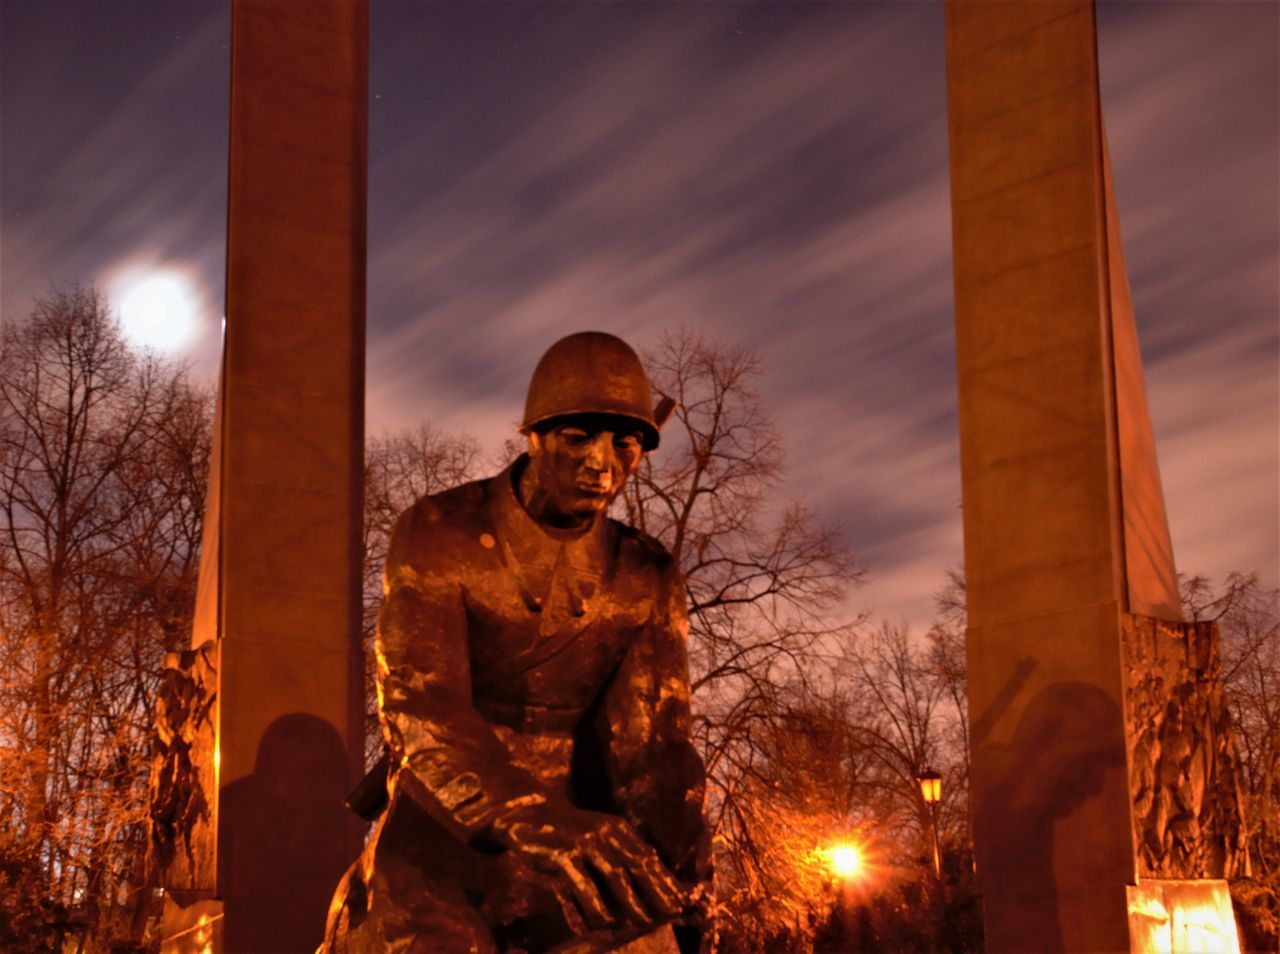 architectural column, statue, real people, religion, architecture, sky, built structure, sculpture, sunset, night, outdoors, tree, standing, army soldier, one person, illuminated, nature